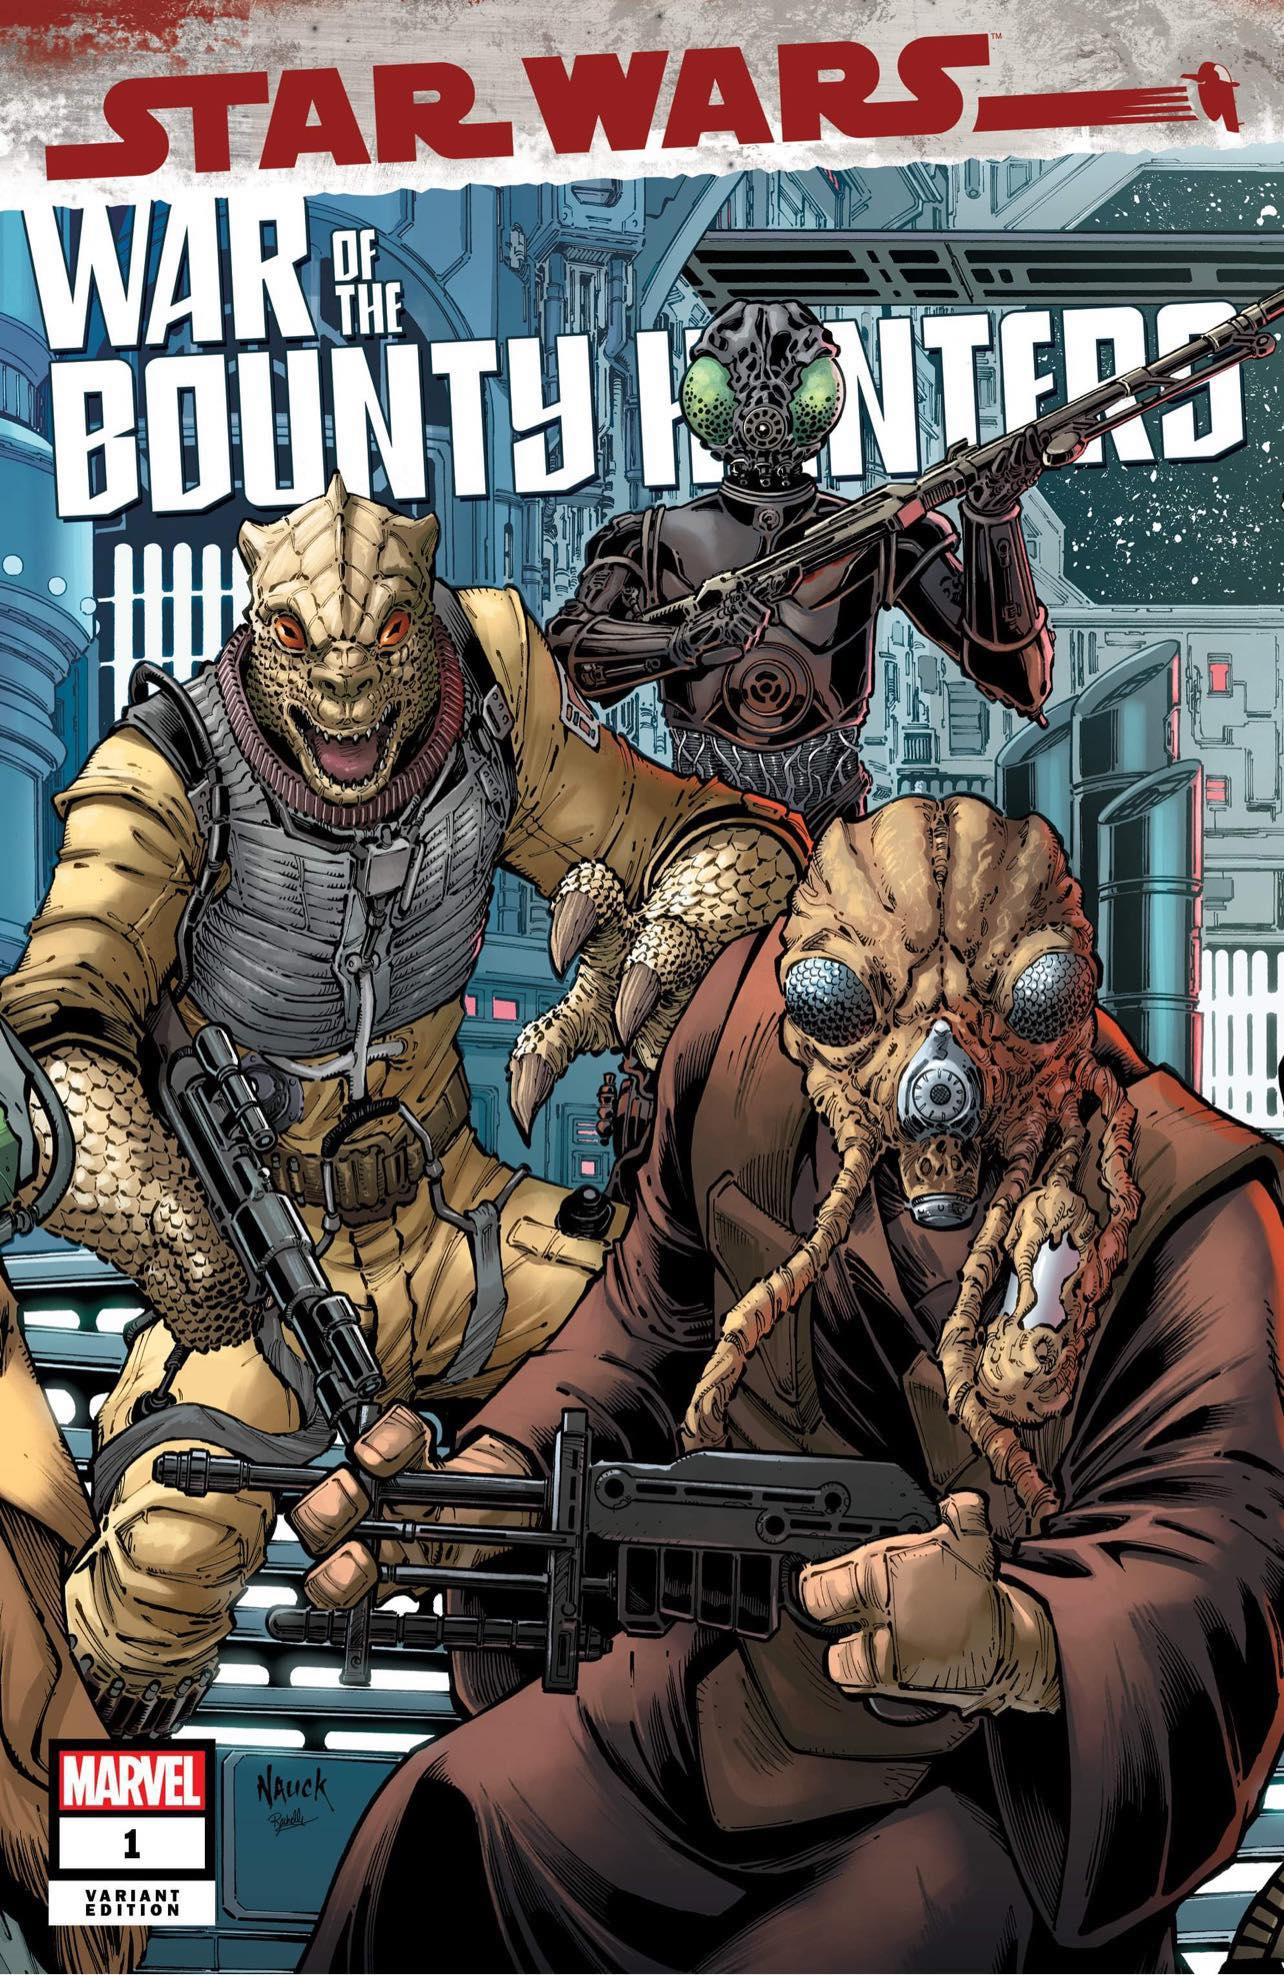 War of the Bounty Hunters #1 (Todd Nauck Variant Cover) (02.06.2021)